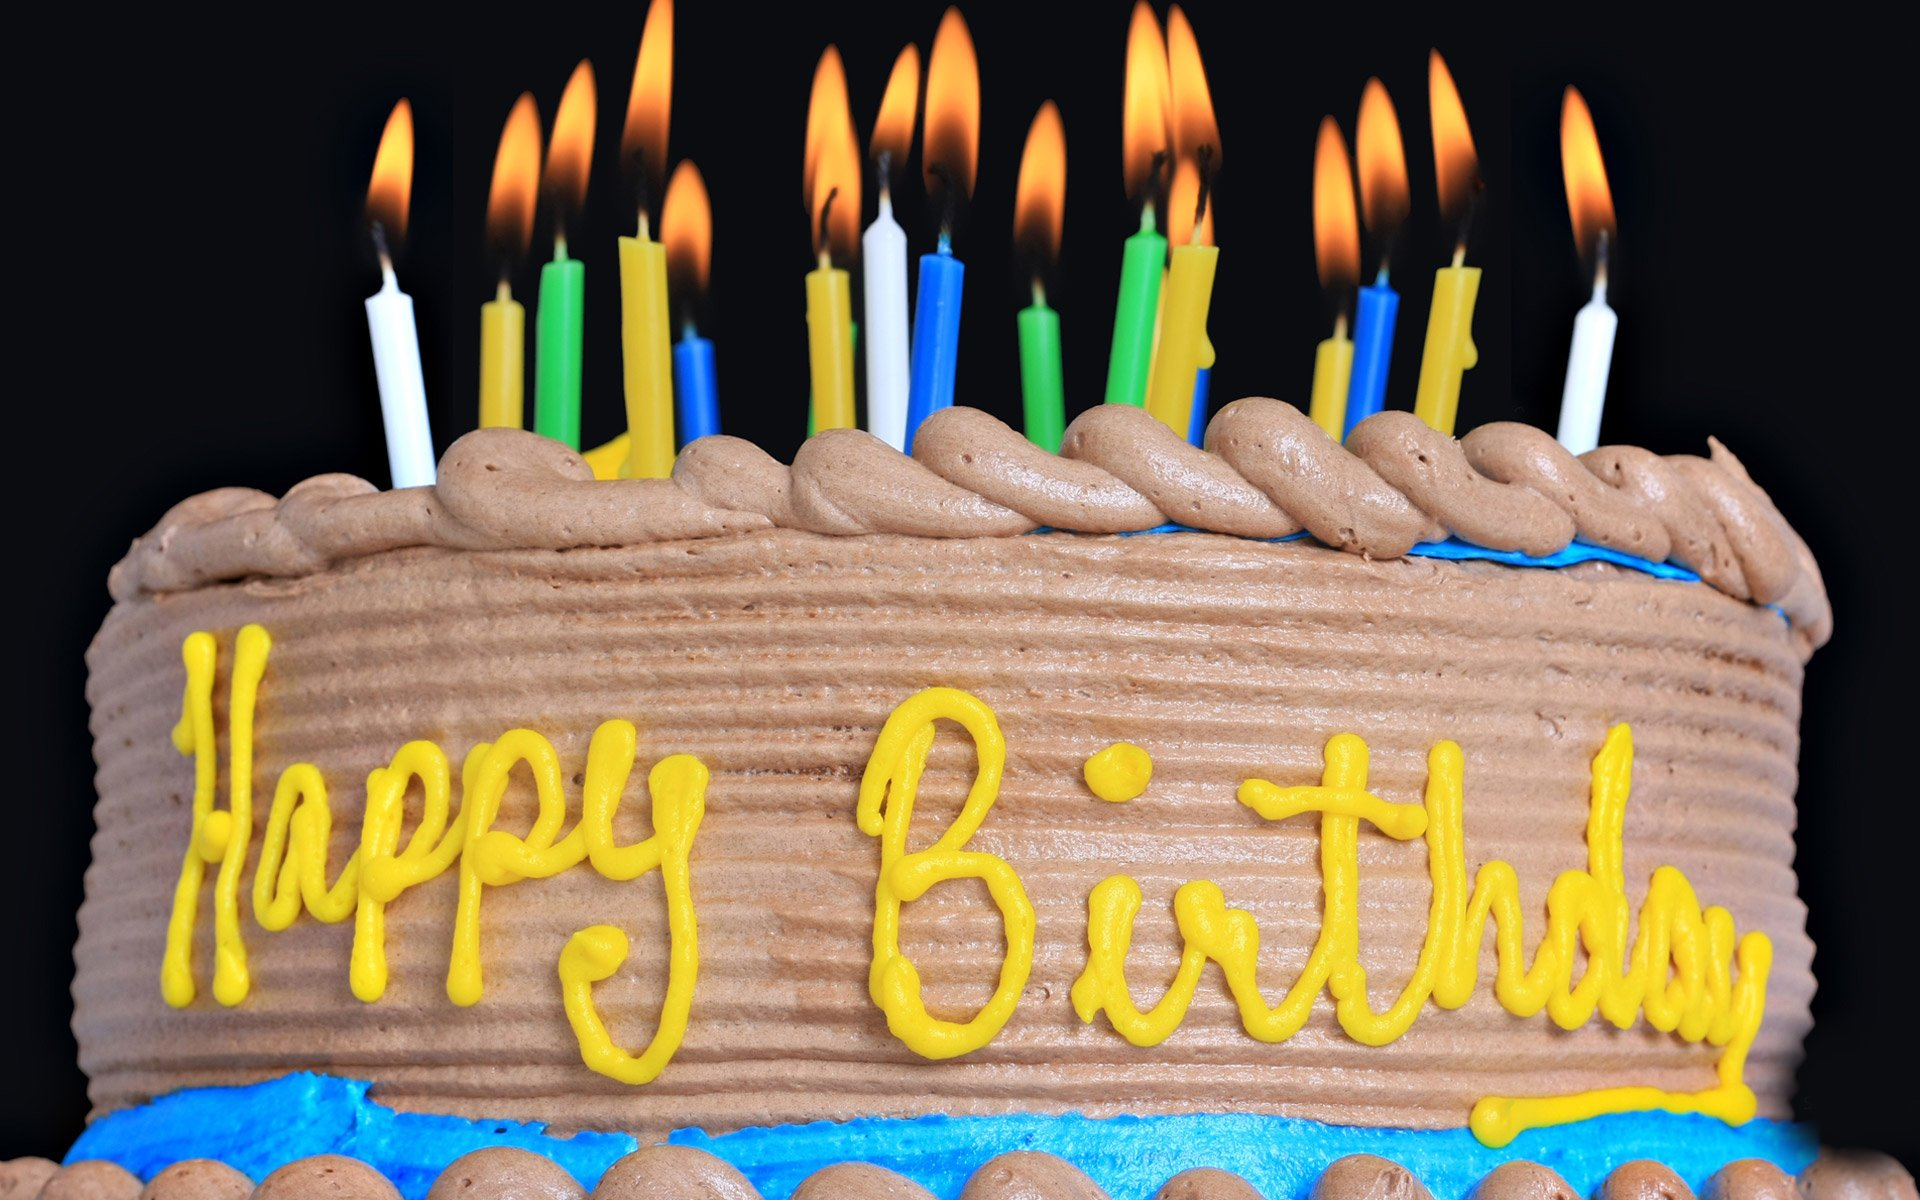 Birthday Cake With Candles Hd Images : Birthday Cake with Candles Full HD Wallpaper and ...